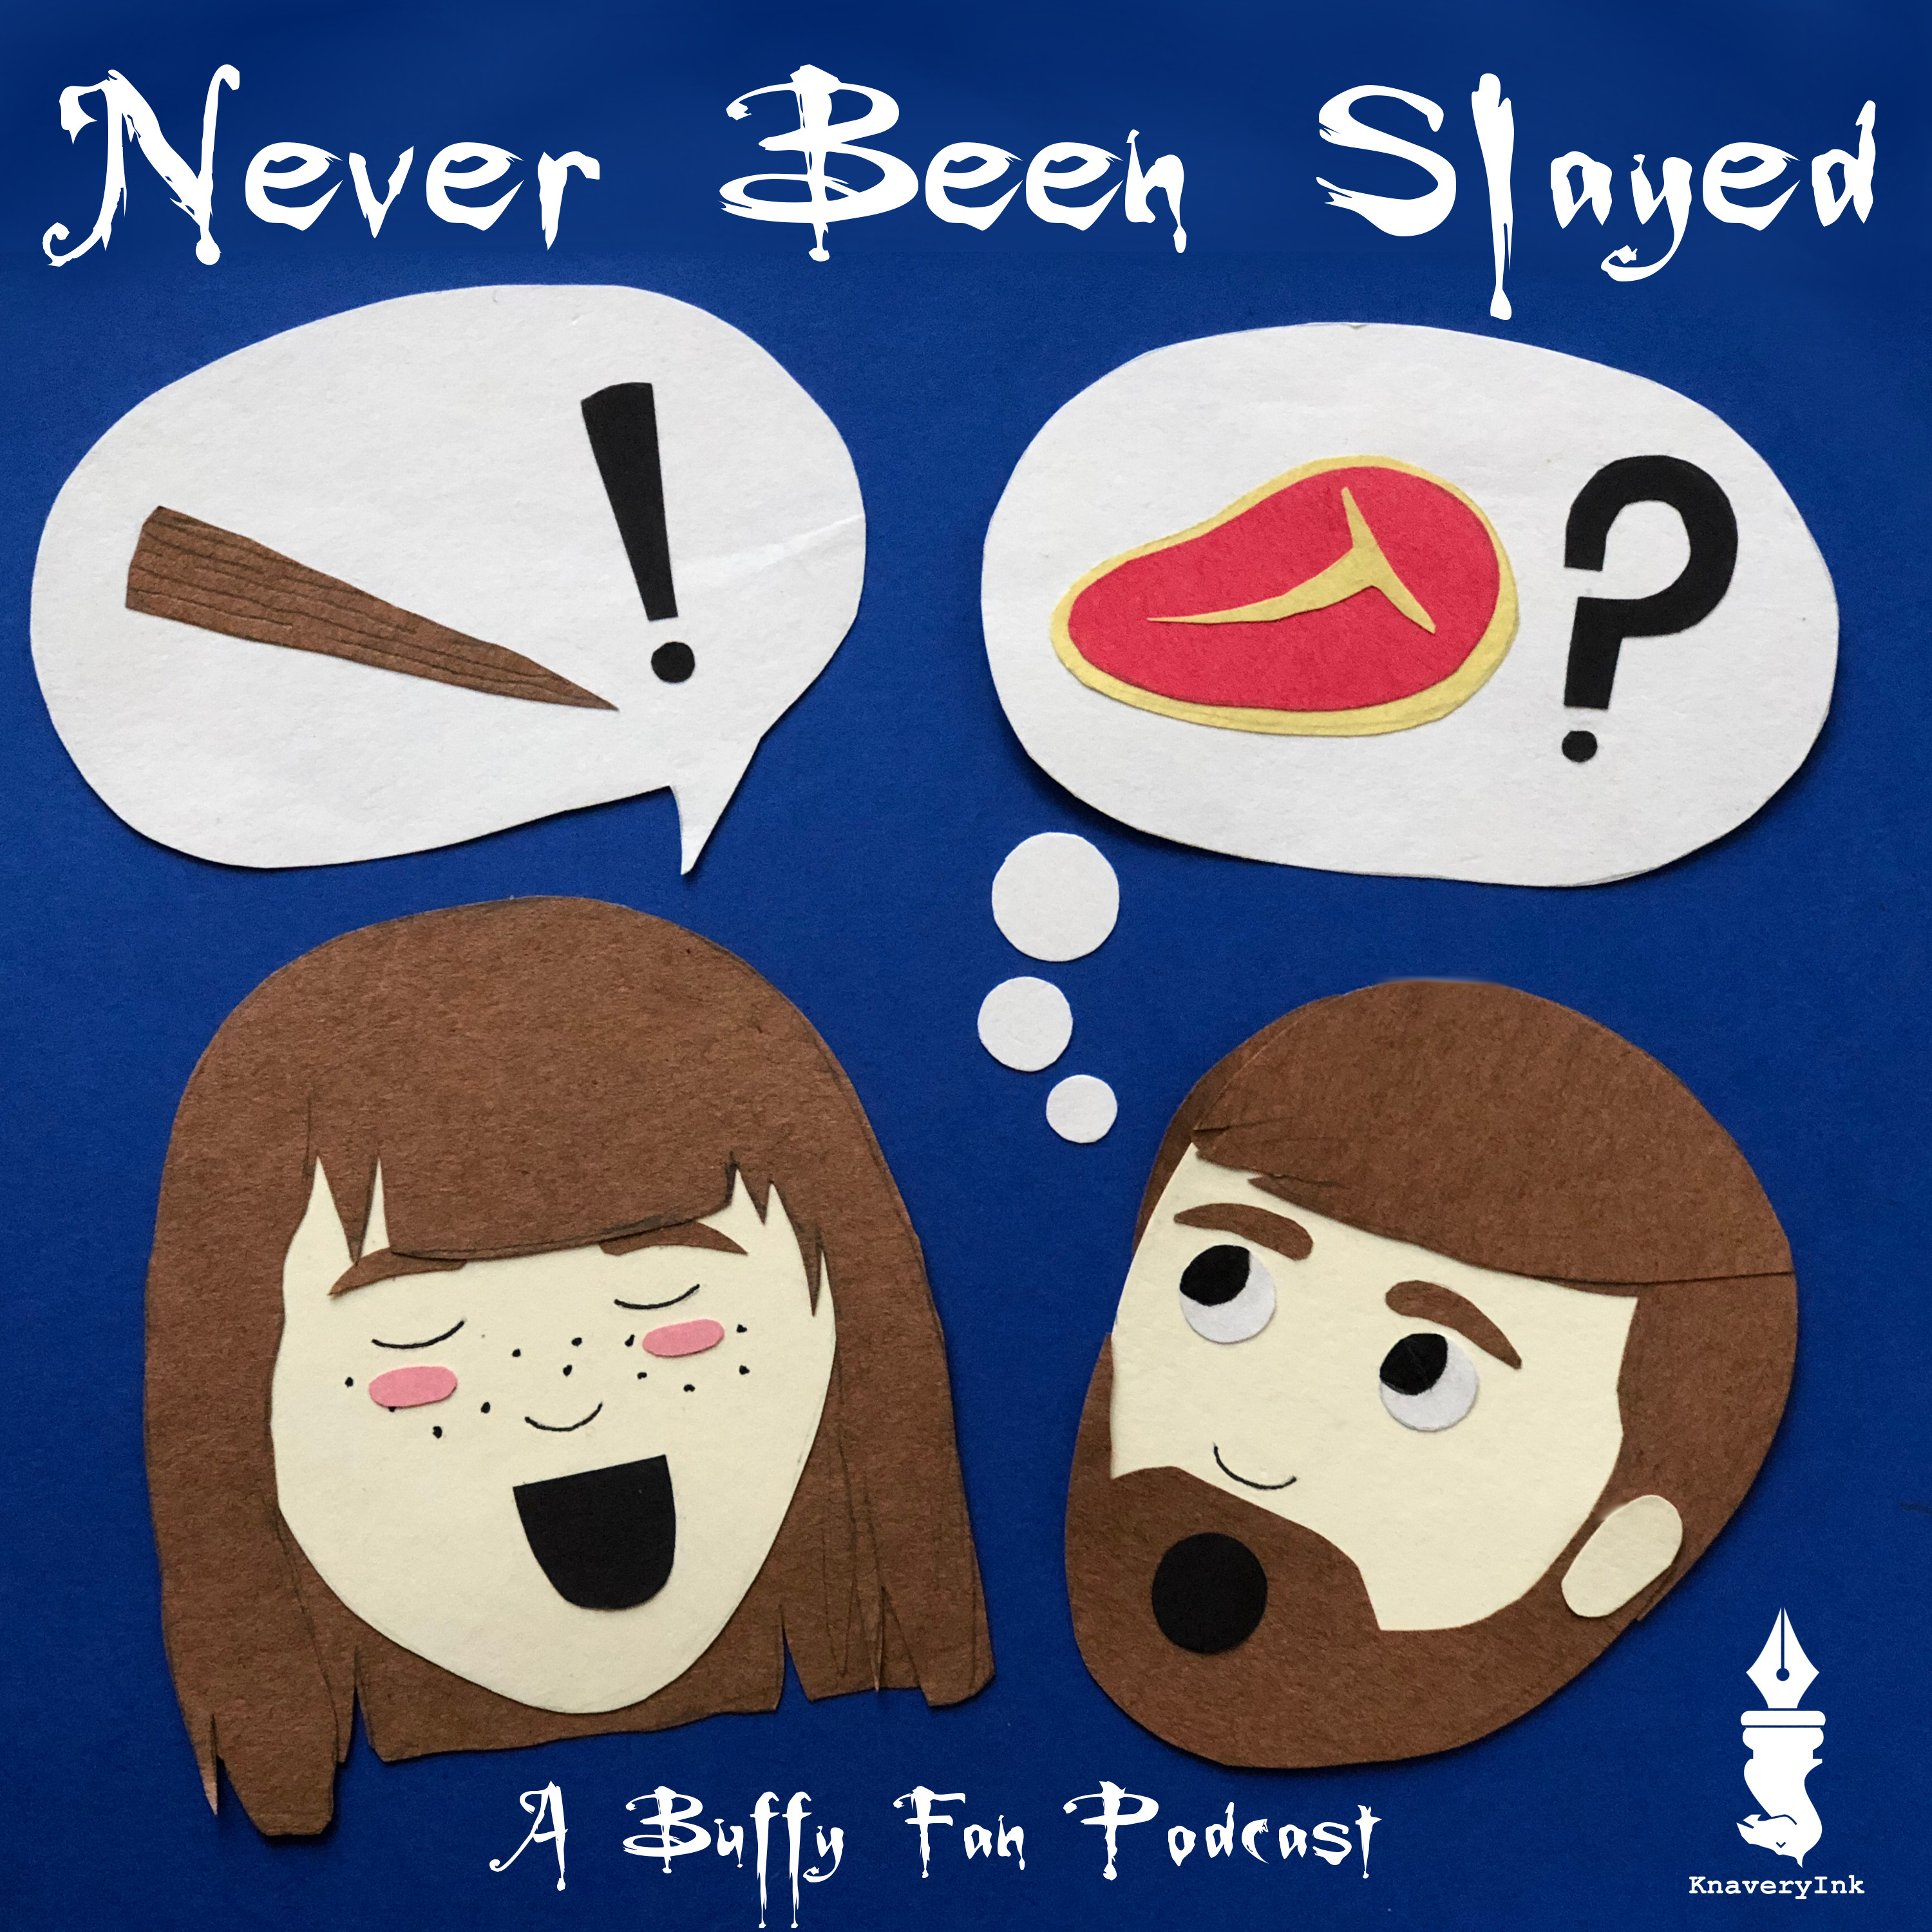 Never Been Slayed: A Buffy Virgin Podcast